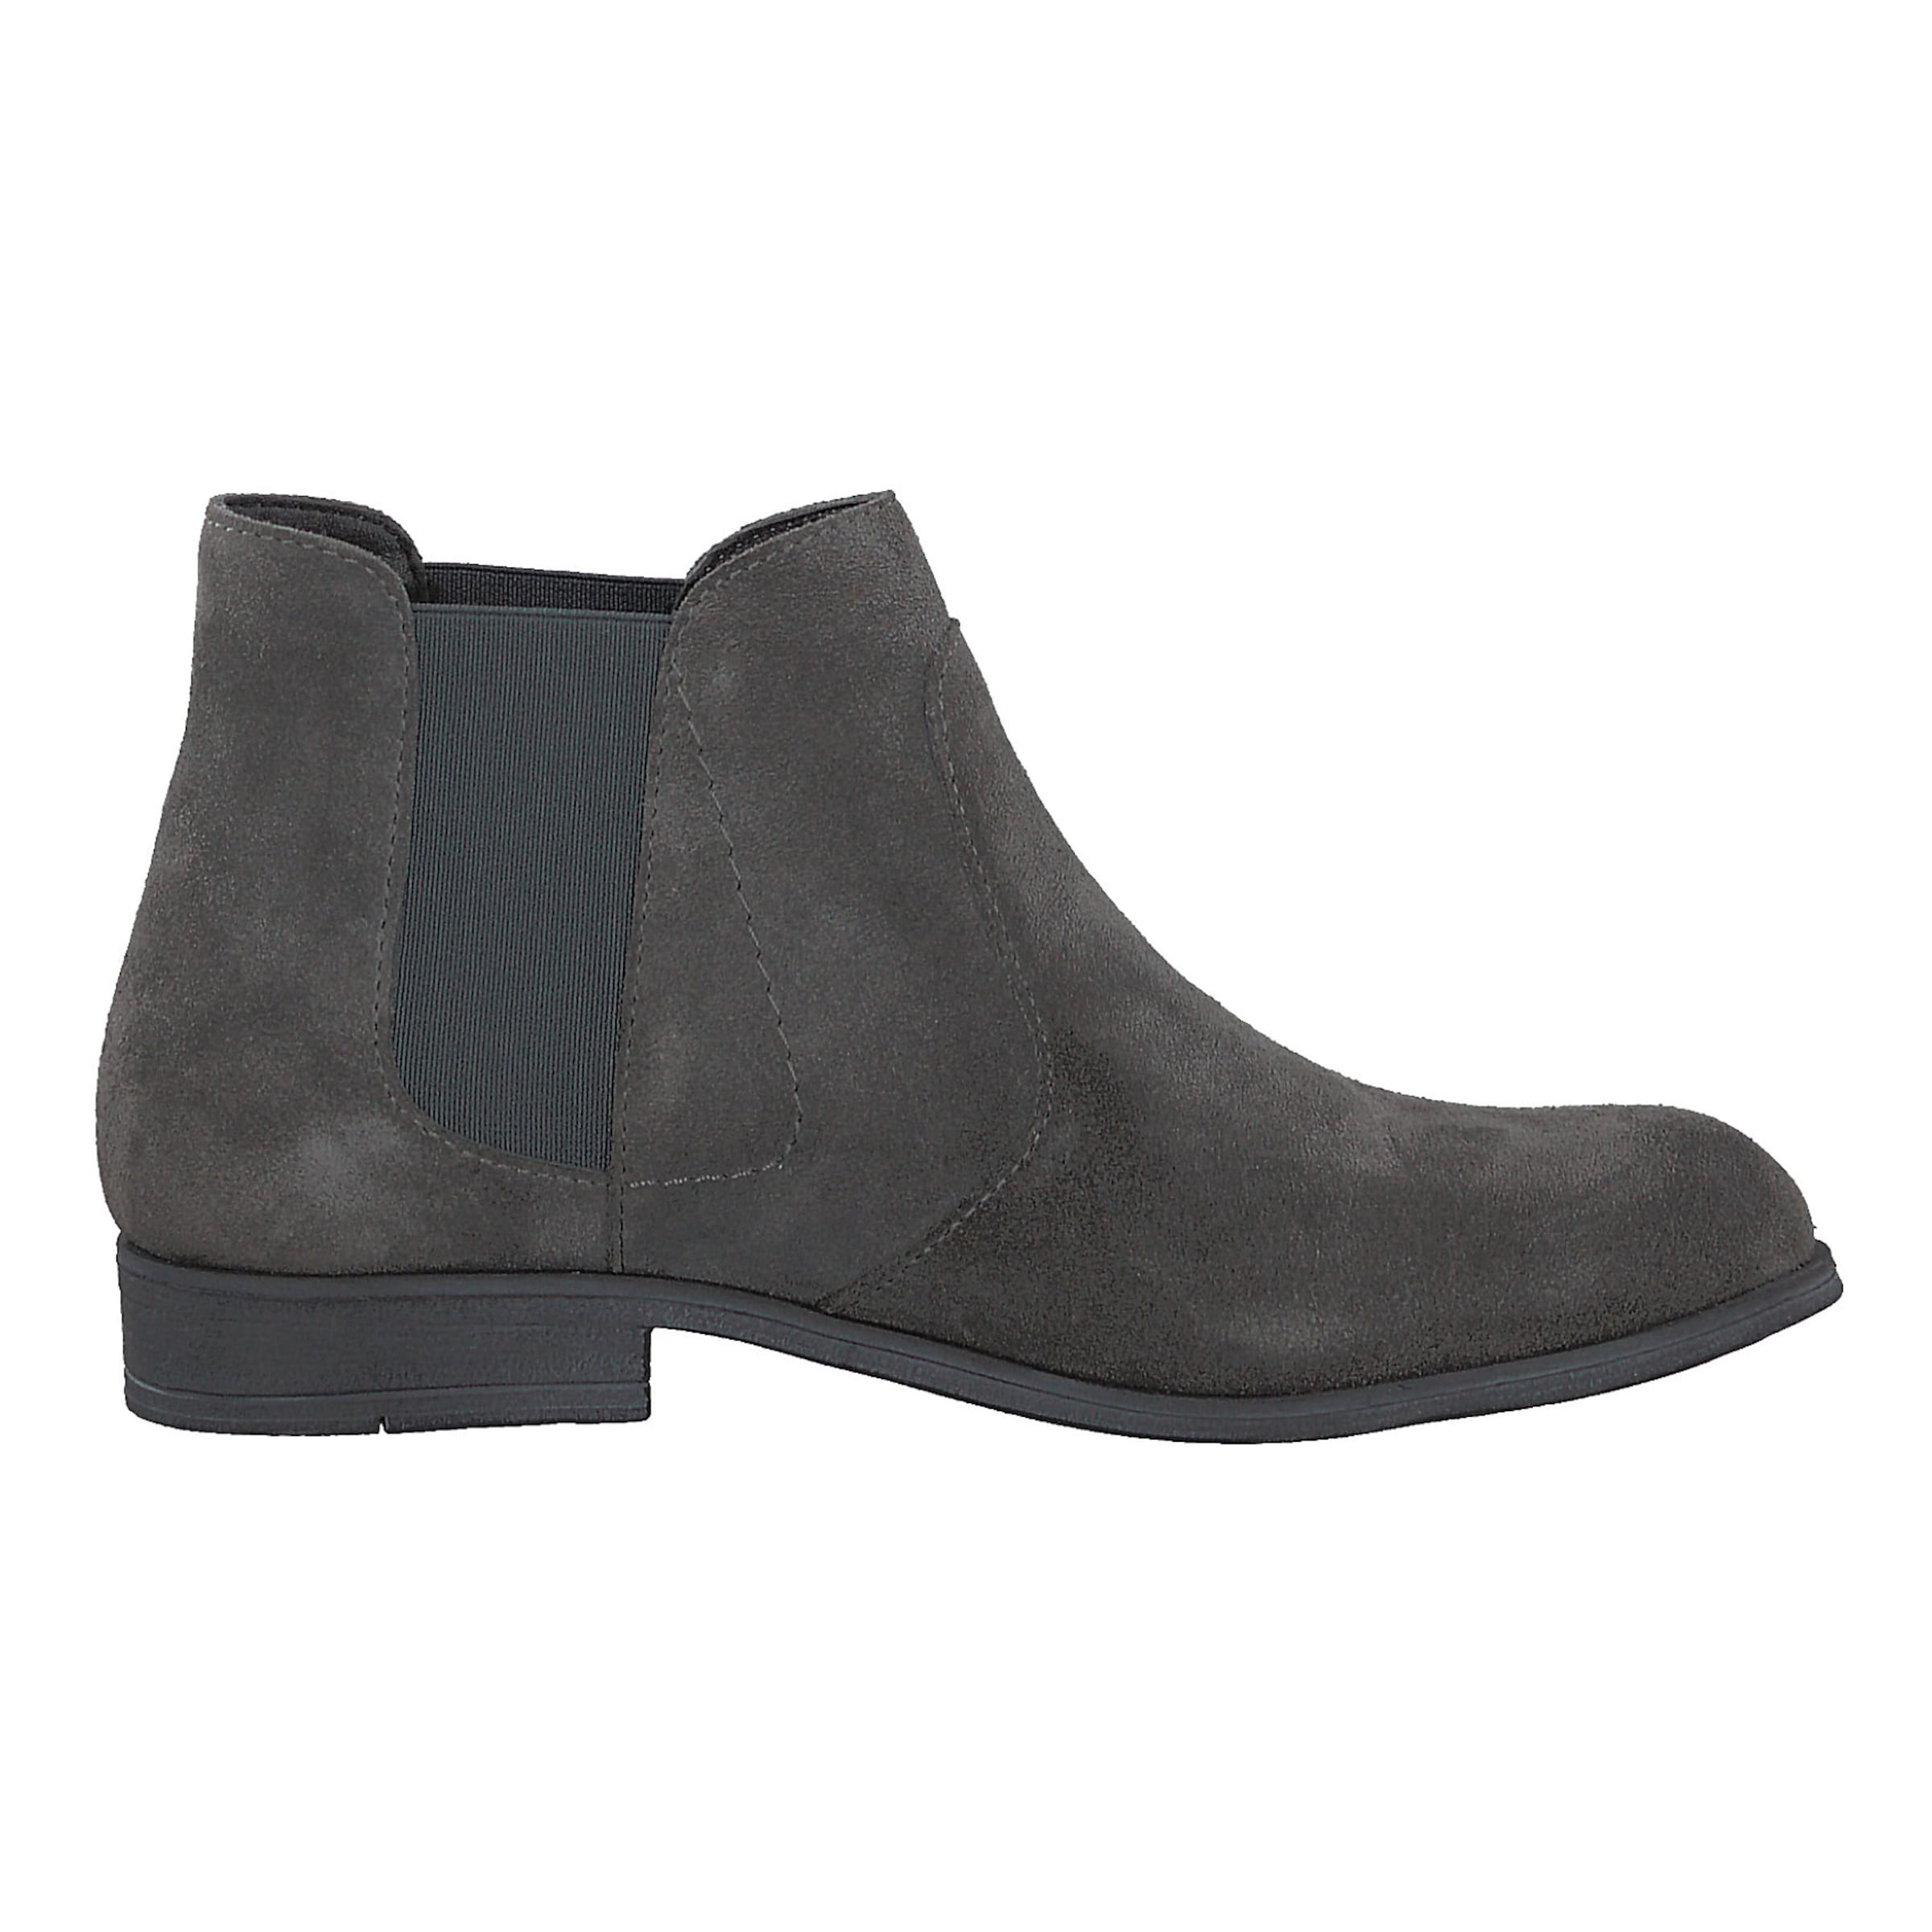 Stiefelette oliver In S Anthrazit Red Label wnNm80